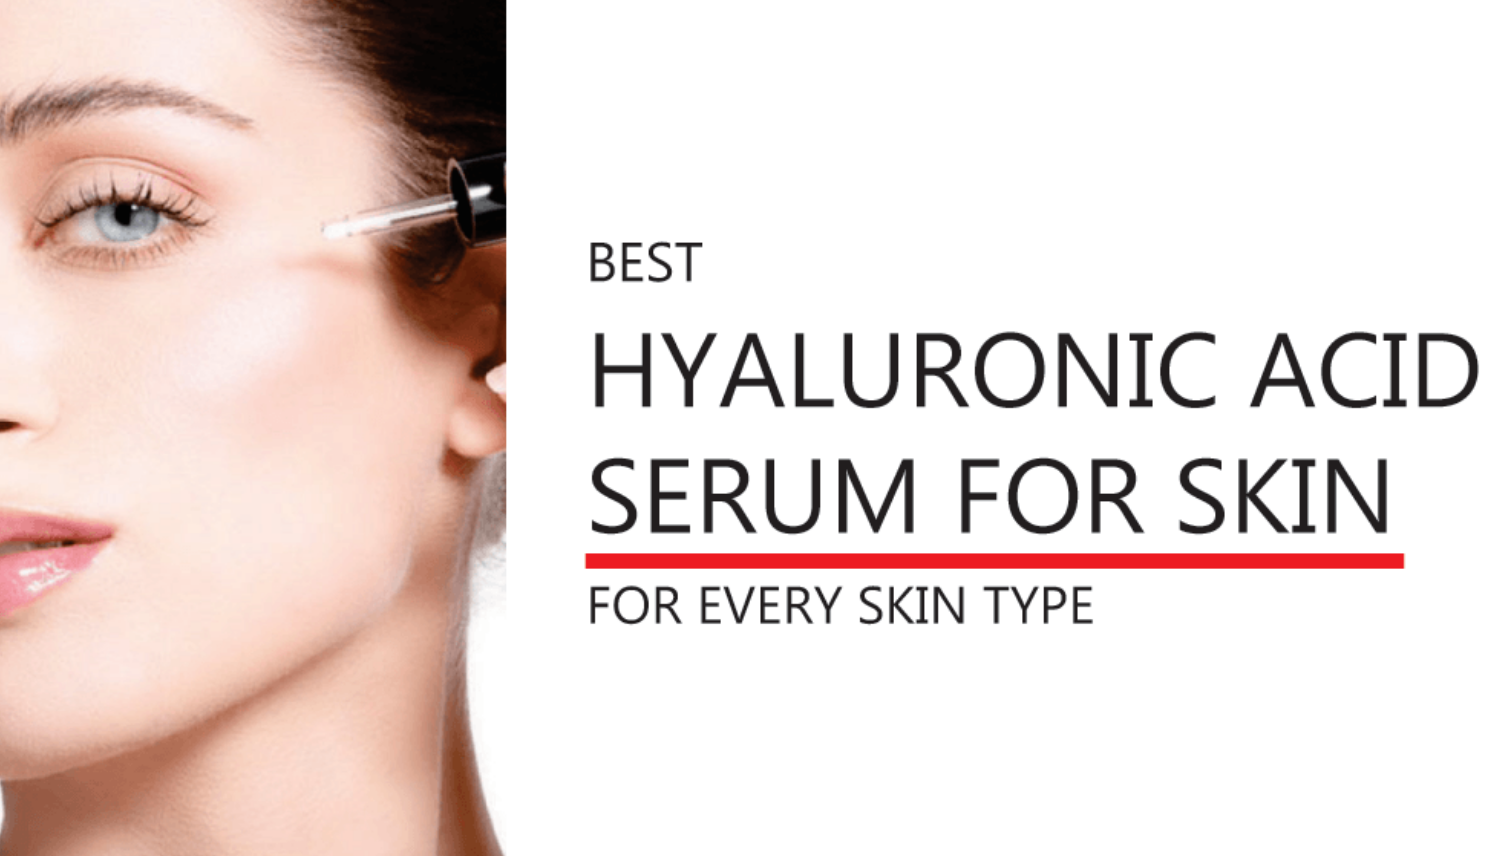 Hyaluronic Acid Facial